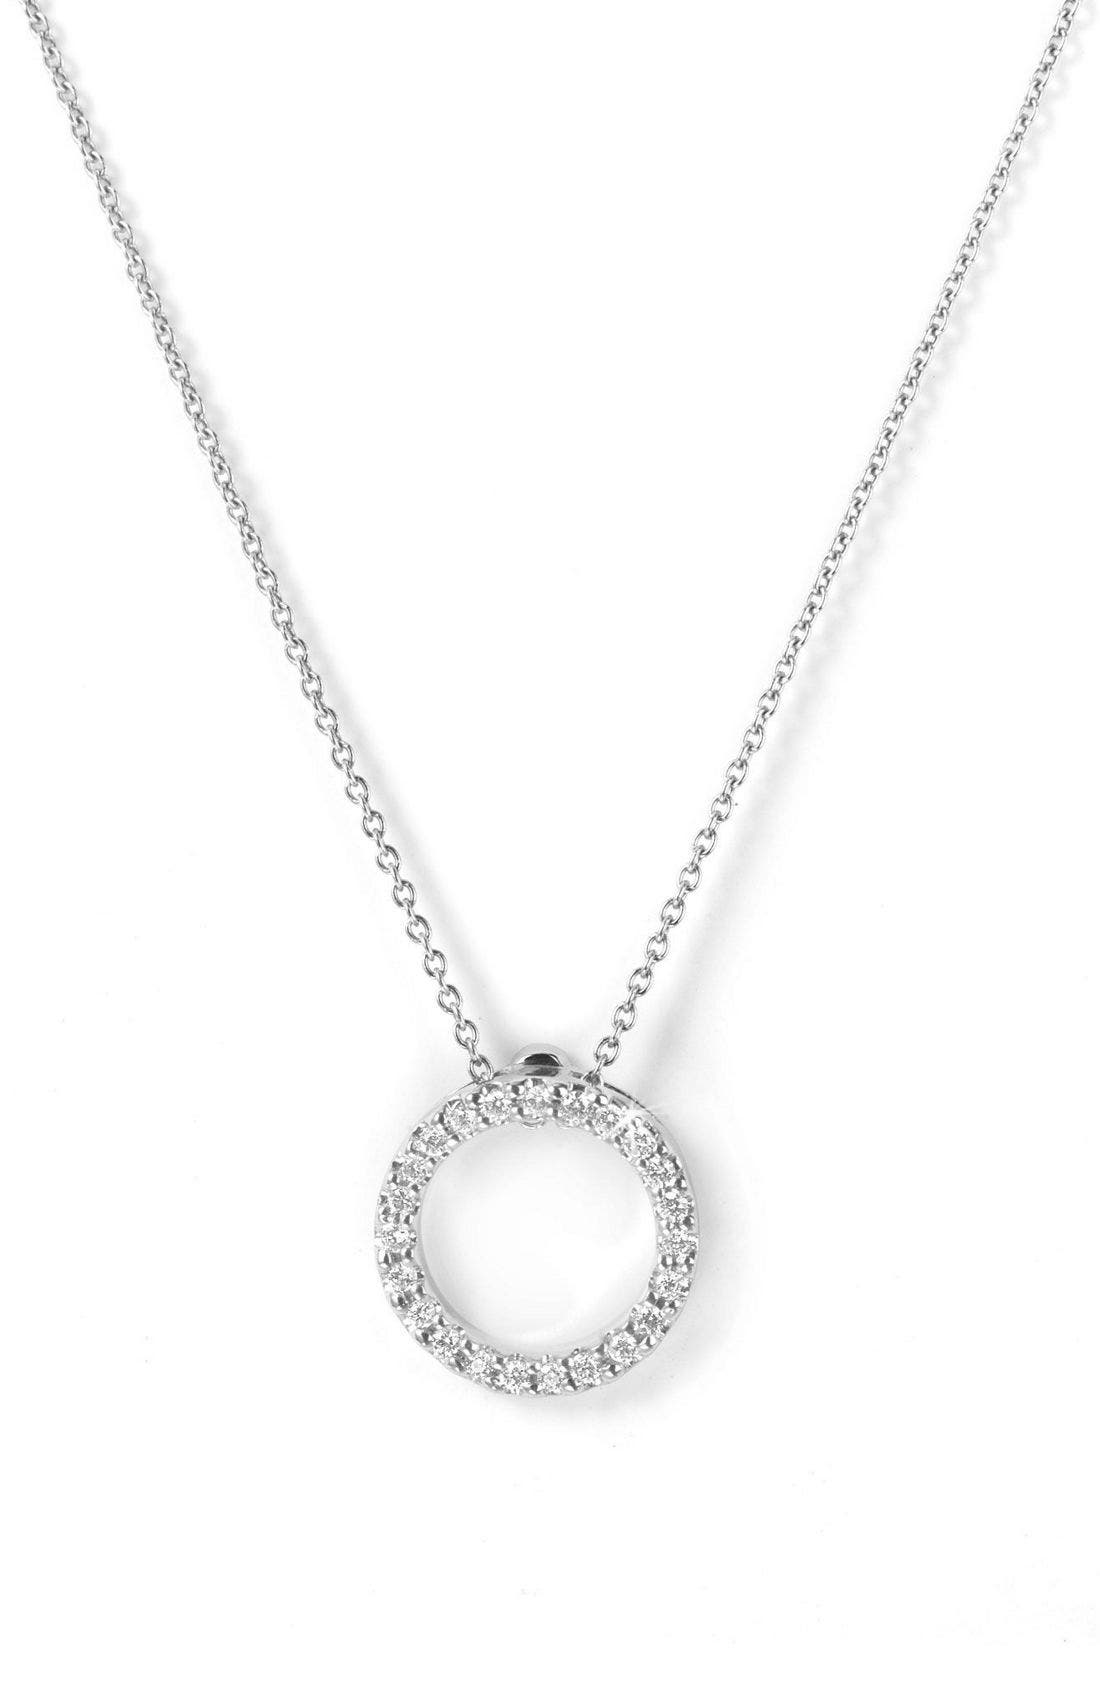 Main Image - Roberto Coin 'Tiny Treasures' Small Diamond Circle Pendant Necklace